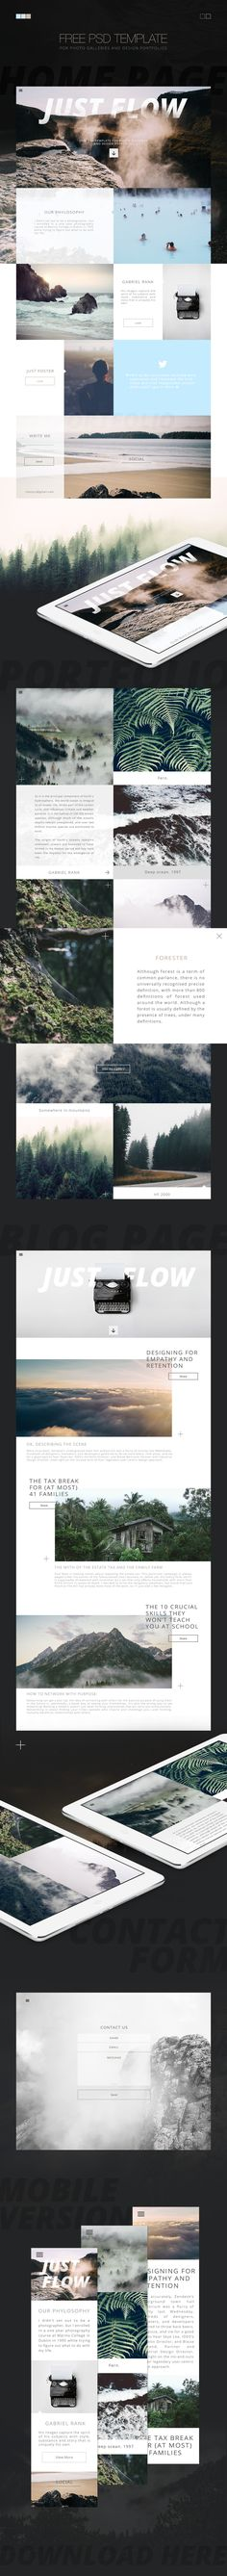 Free PSD template for your photo gallery or portfolio